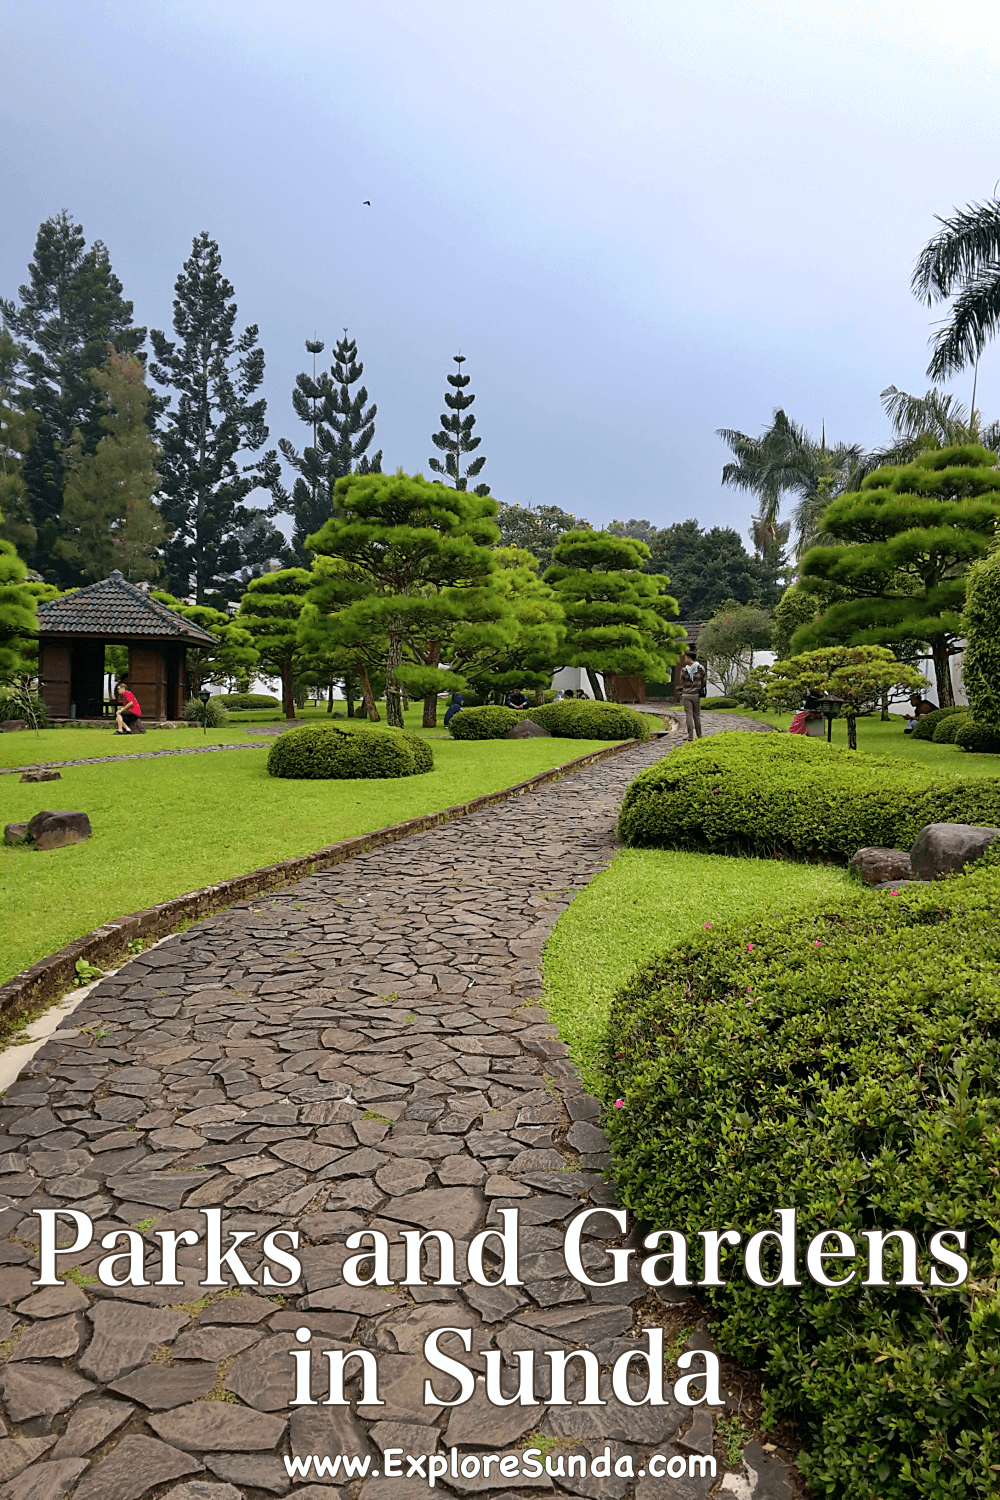 Explore Parks and Gardens in the land of Sunda.